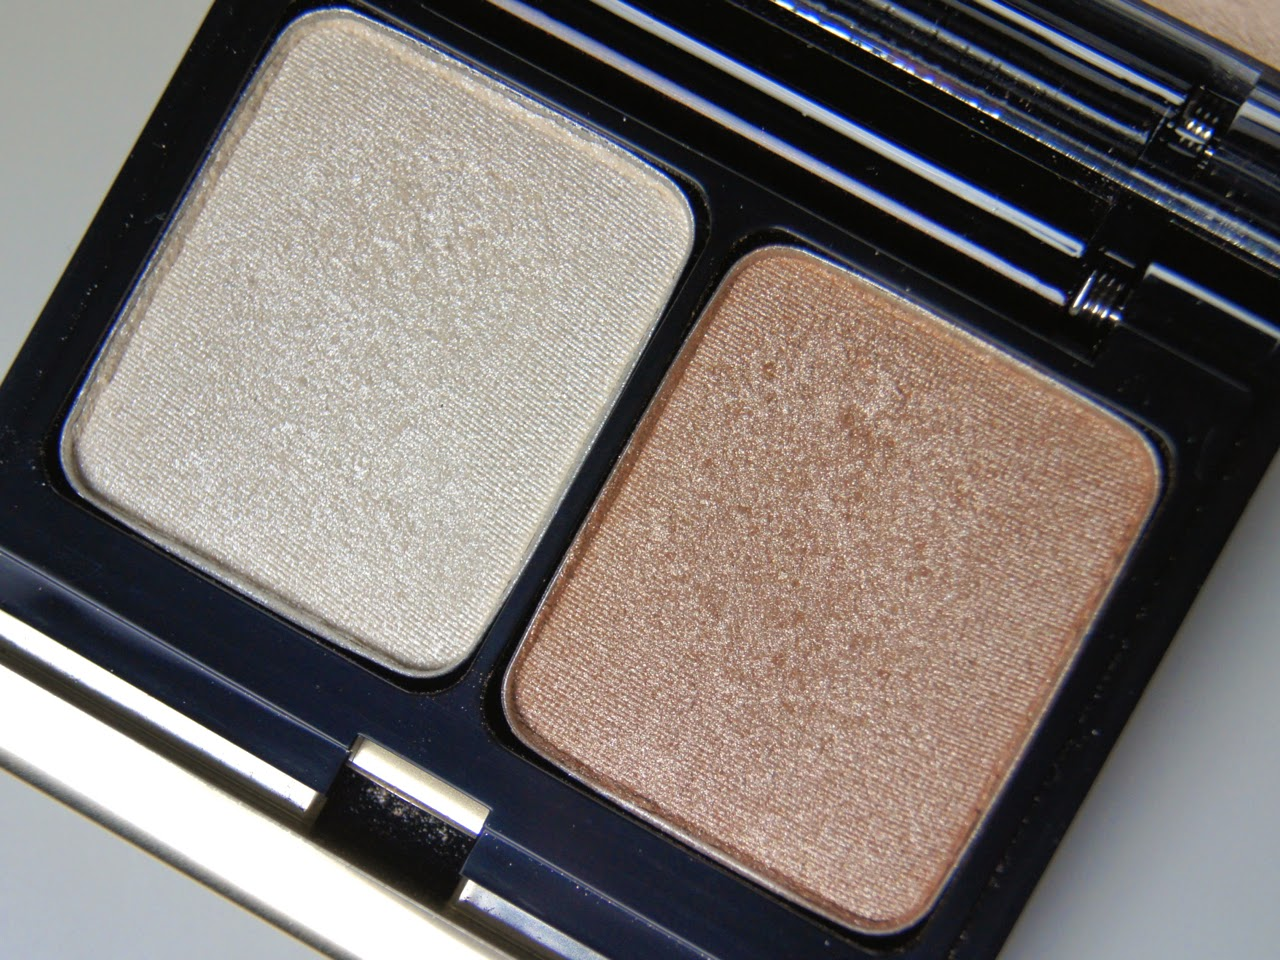 kevyn aucoin eyeshadow duo #202 swatches review